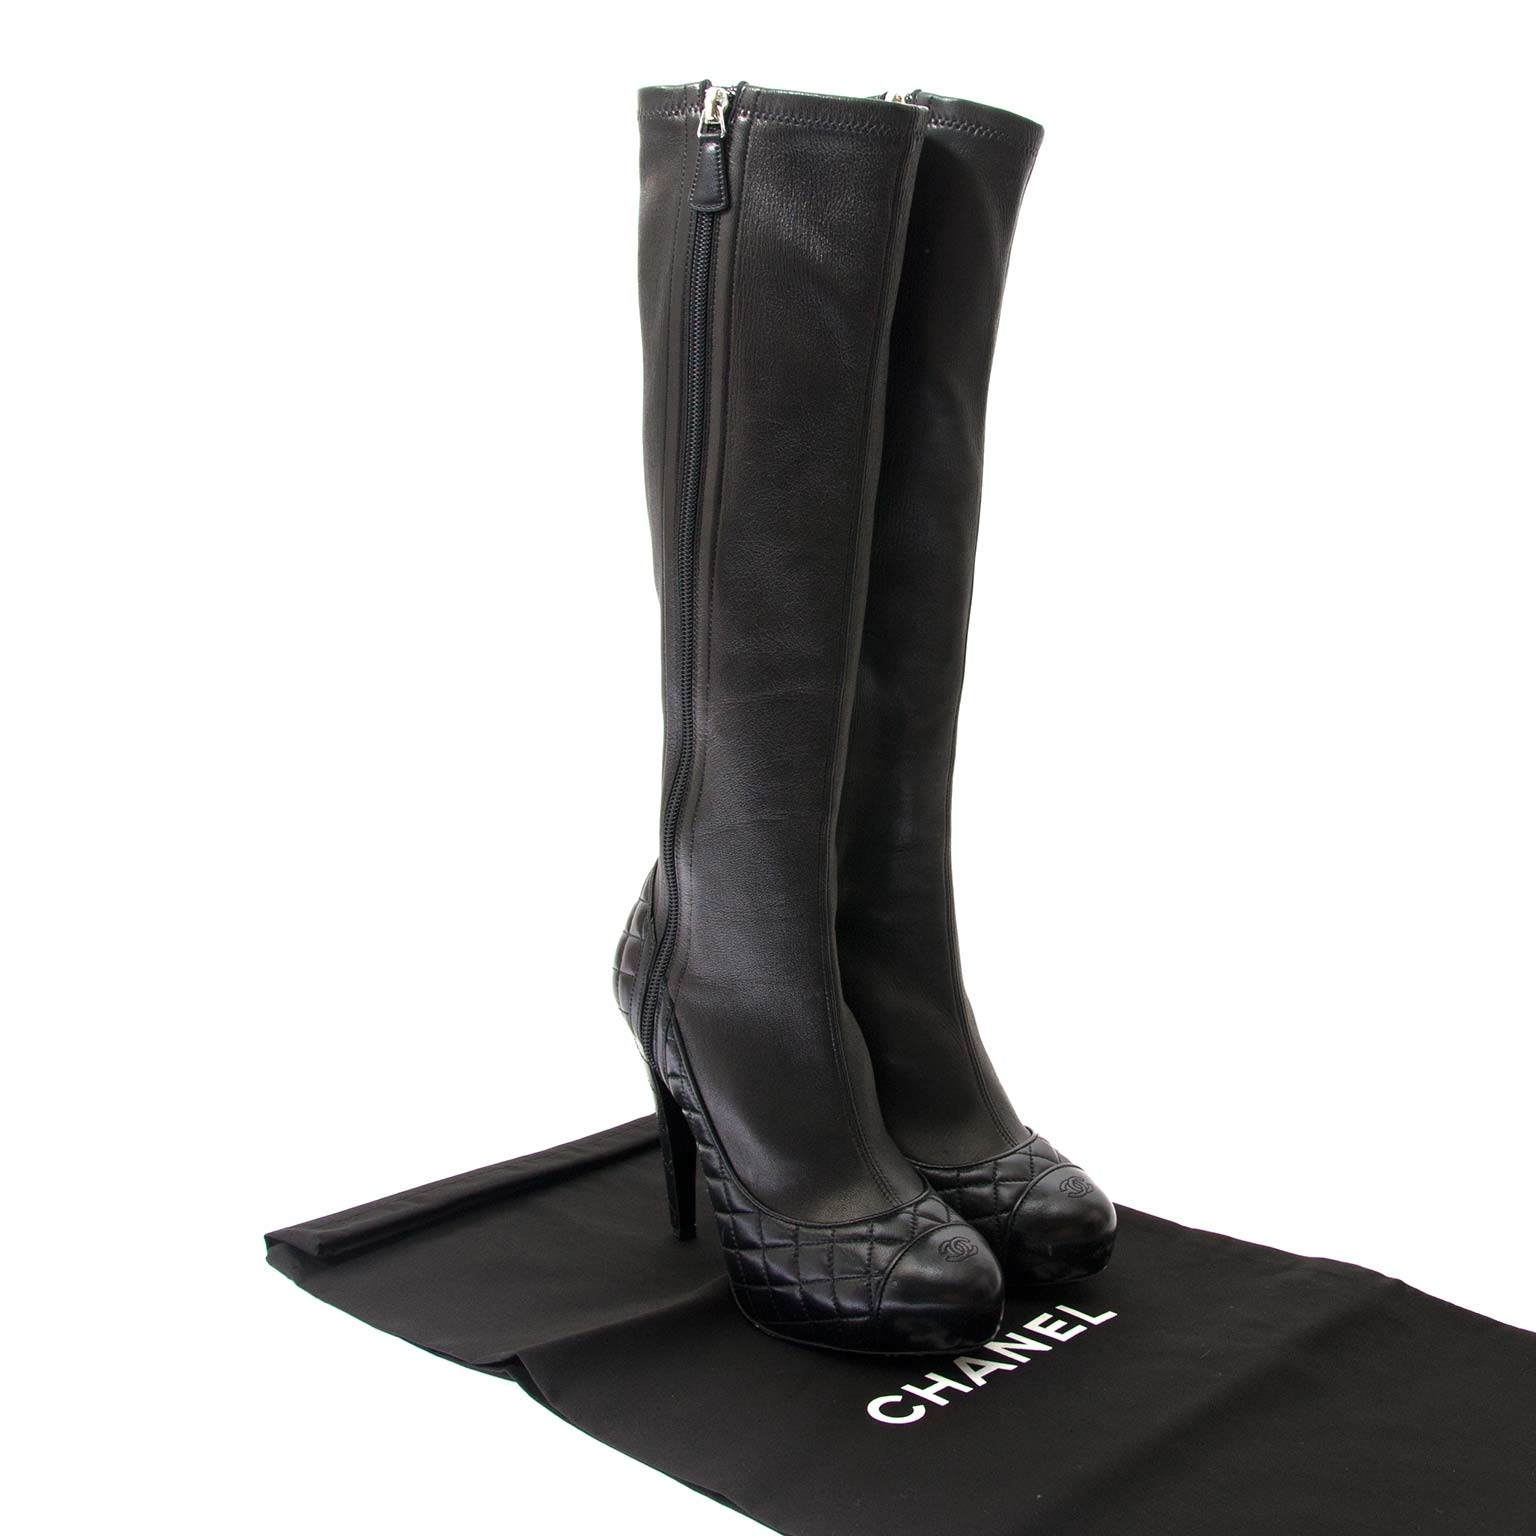 chanel black leather quilted boots now for sale at labellov vintage fashion webshop belgium